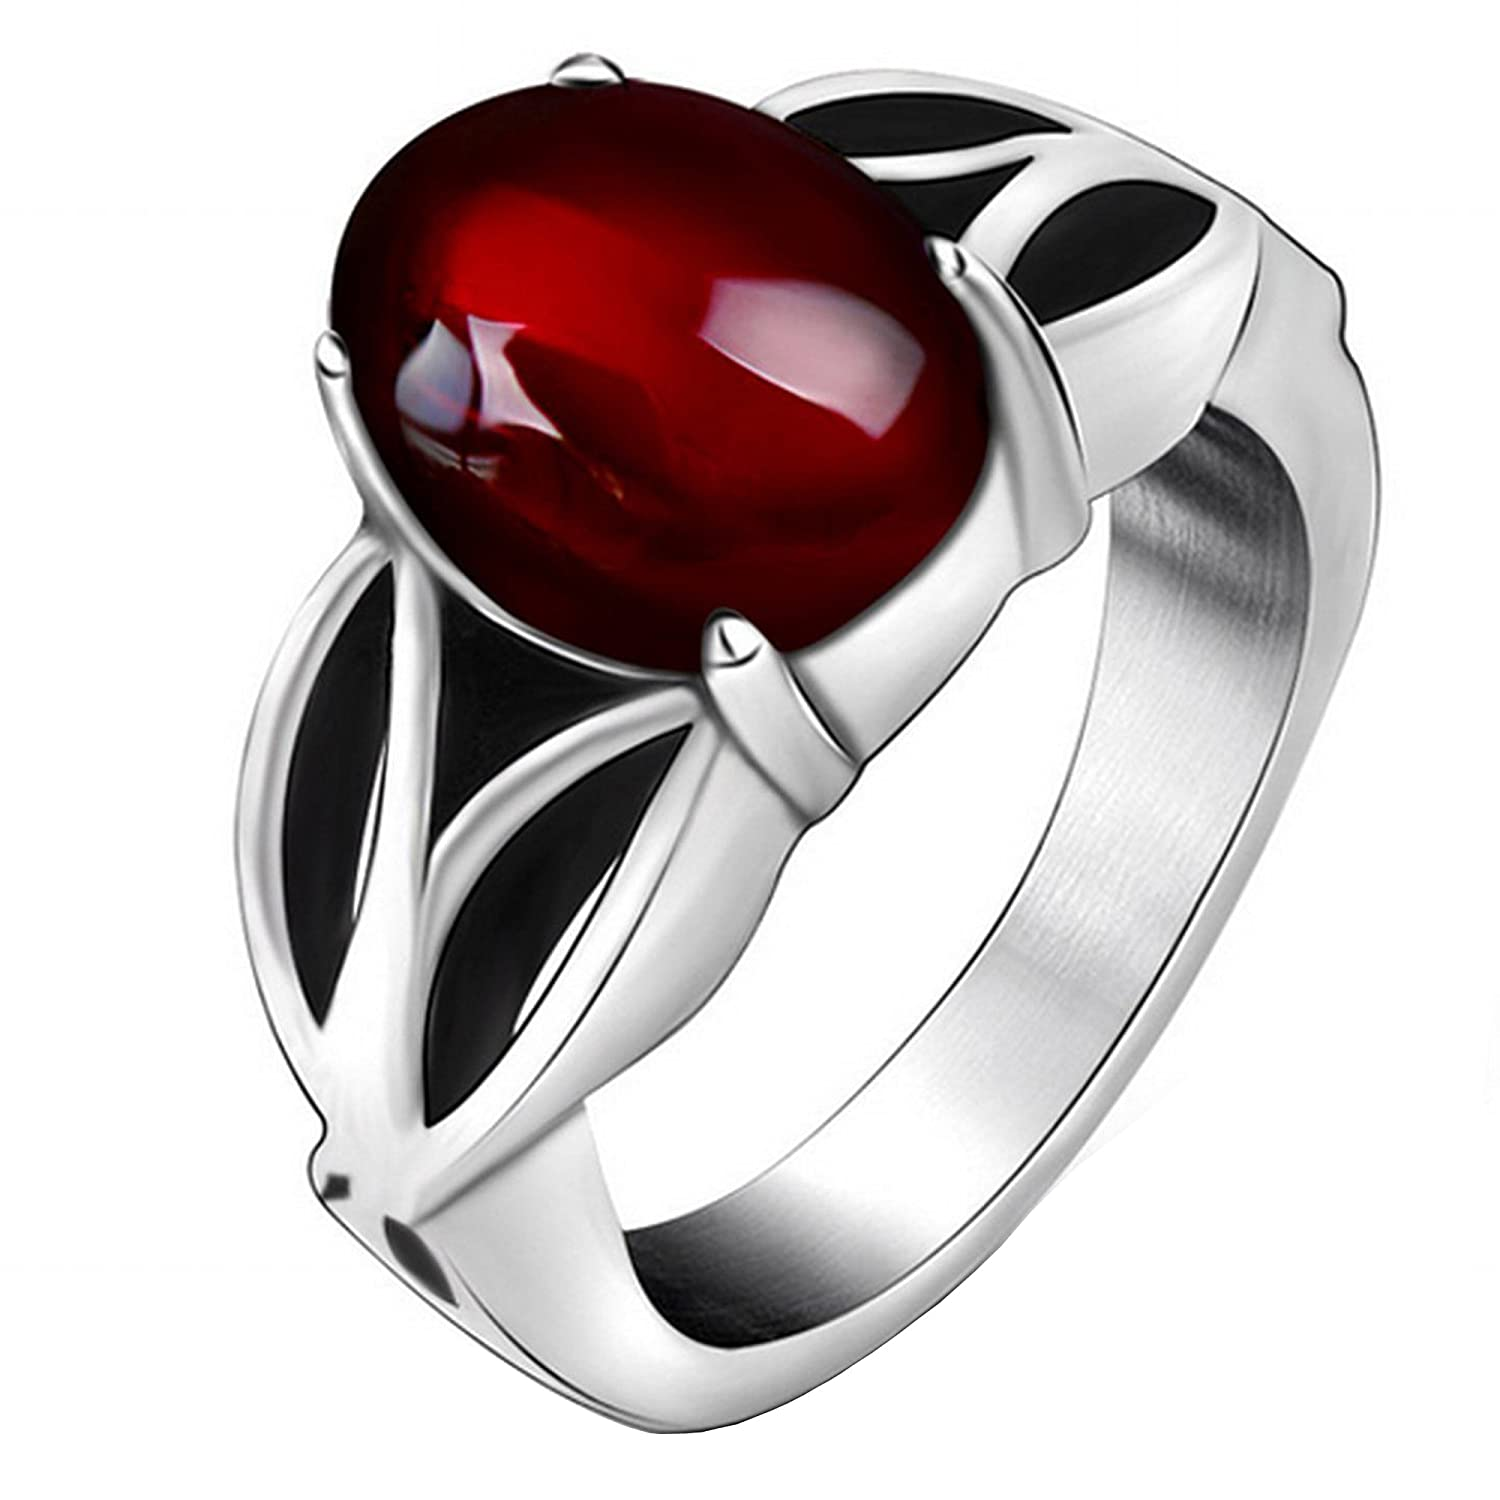 Claire Jin Unisex Red Garnet Ring Lover Couple Rings Hollow Out Titanium Steel Vintage Jewelry